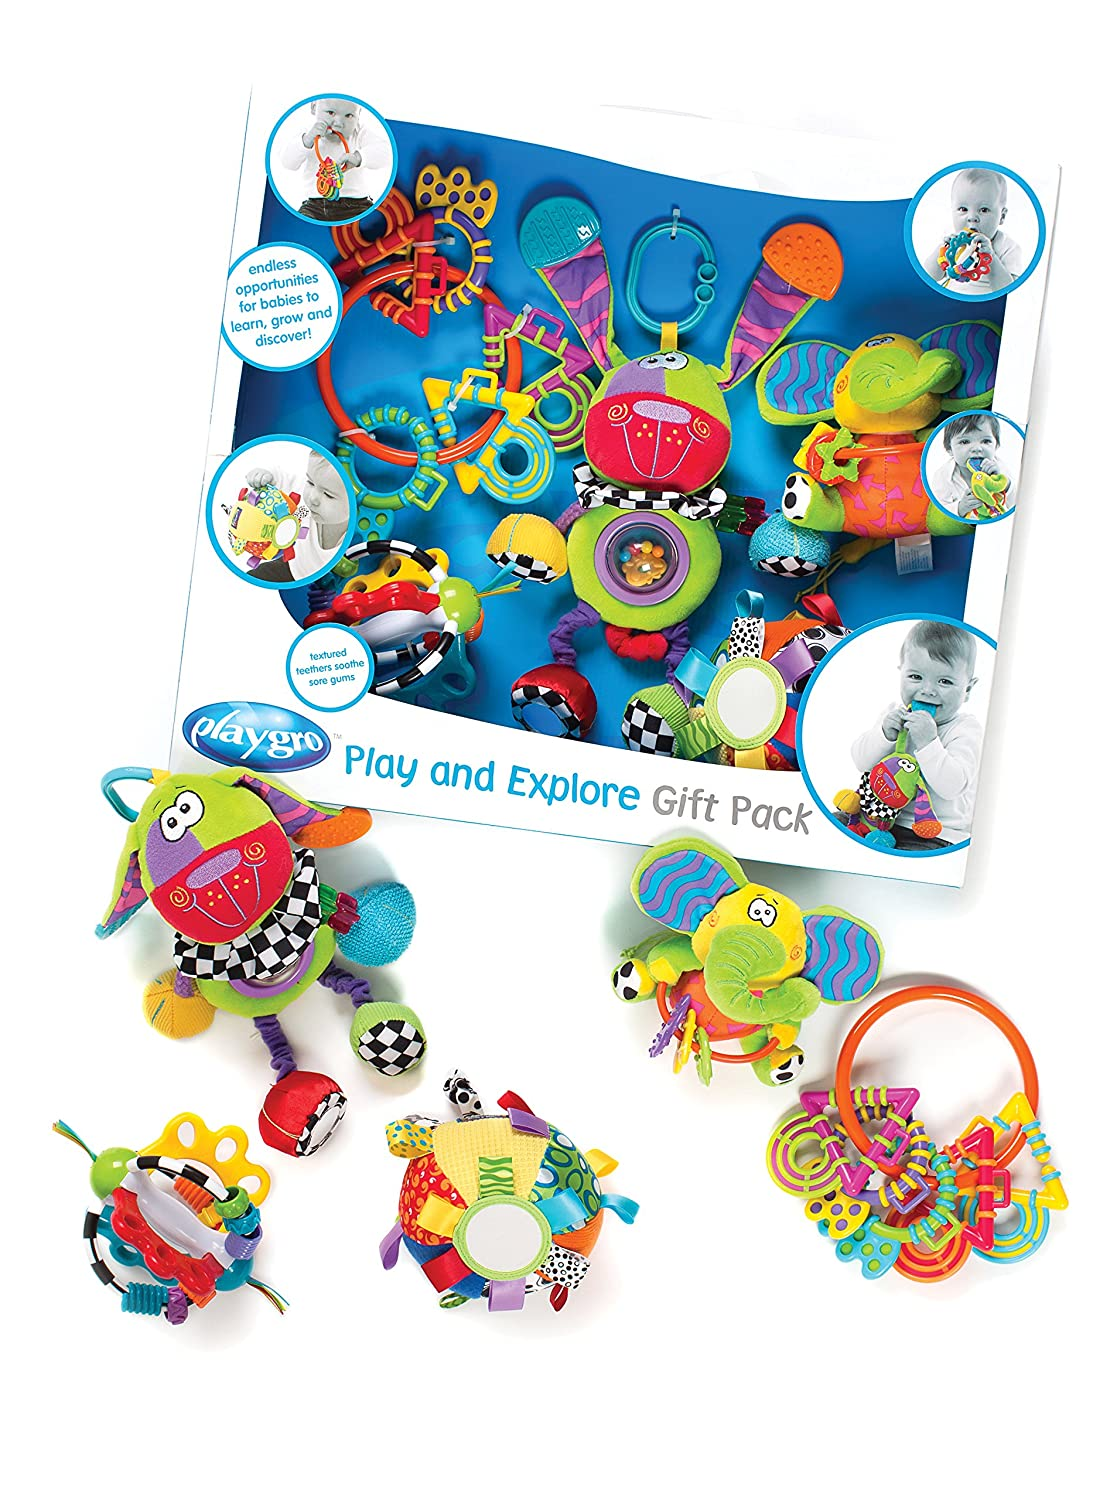 Amazon playgro 0183497 play and explore gift pack for baby amazon playgro 0183497 play and explore gift pack for baby baby negle Image collections